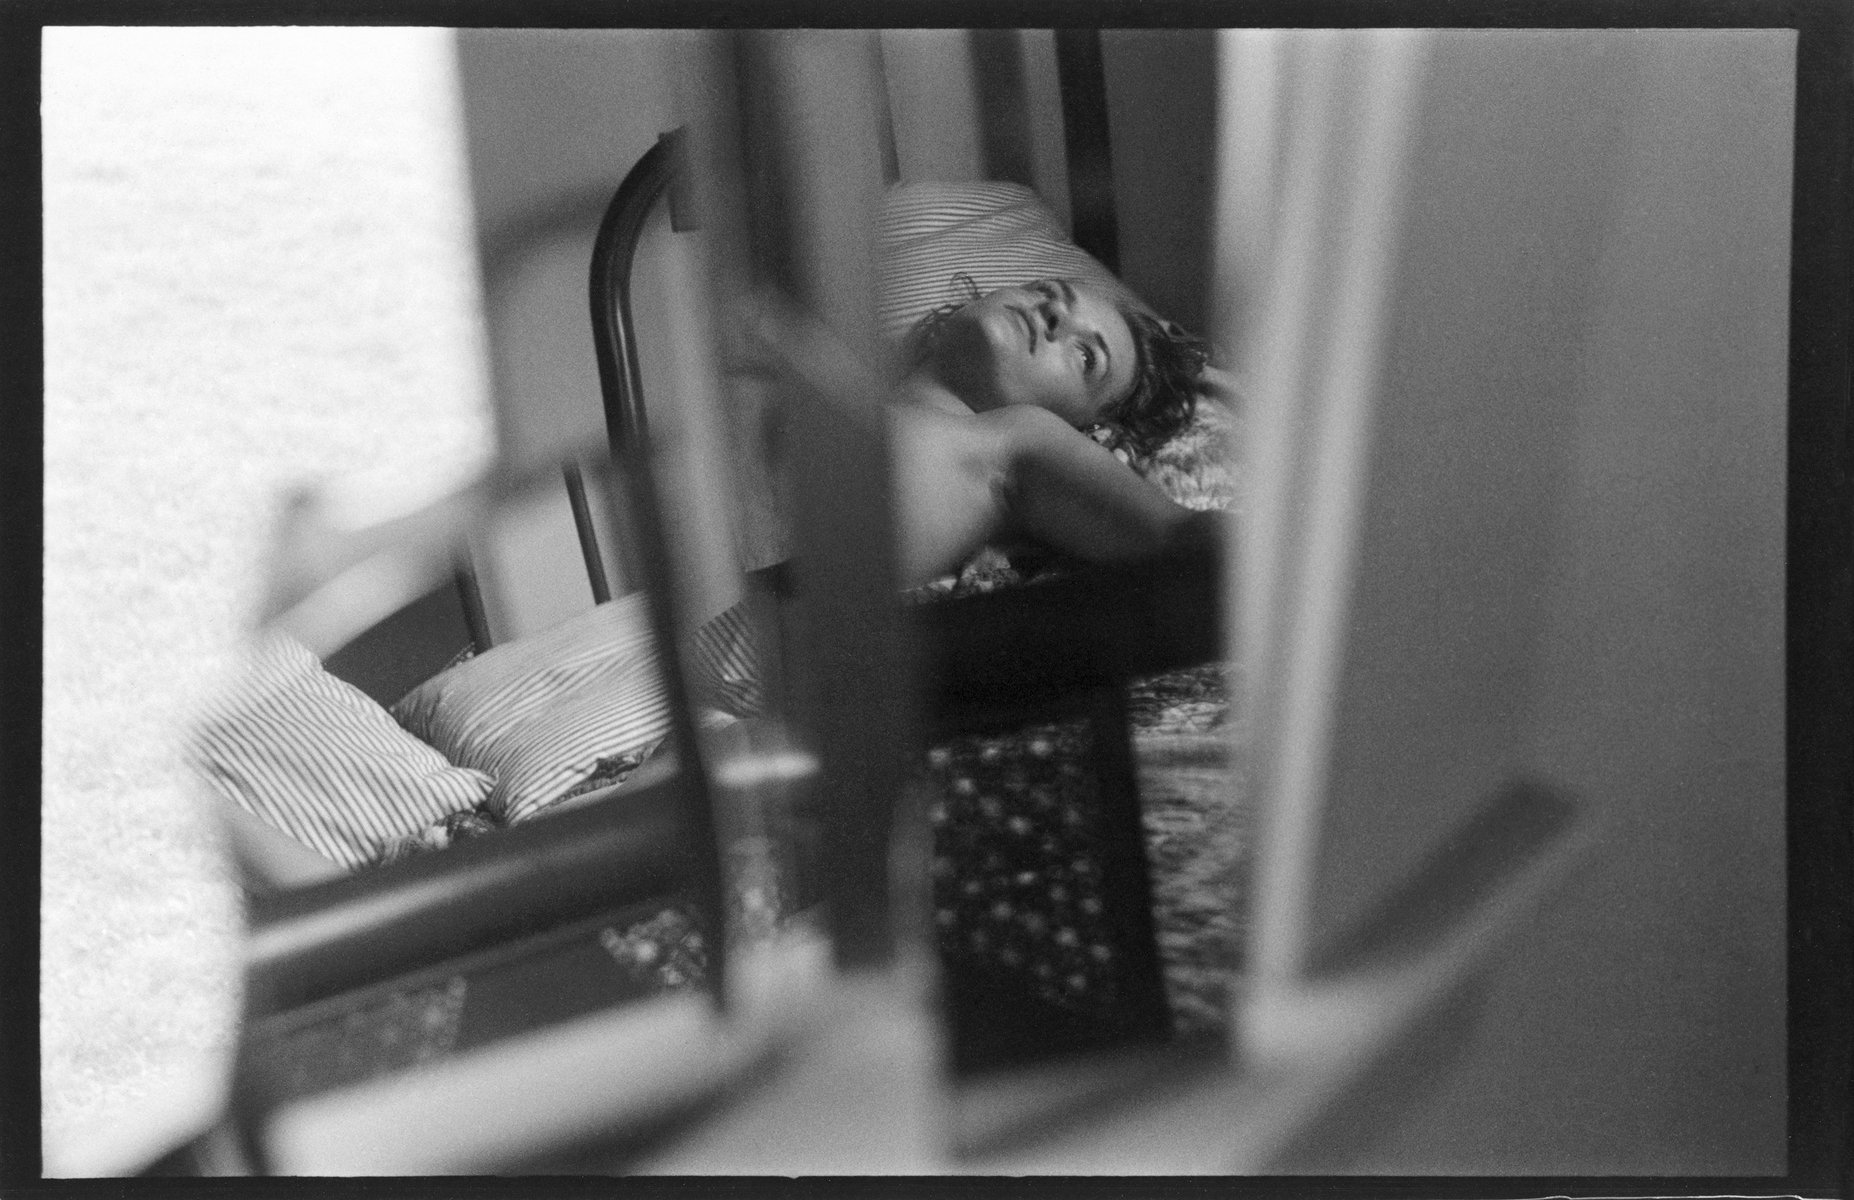 saul-leiter-in-my-room-06